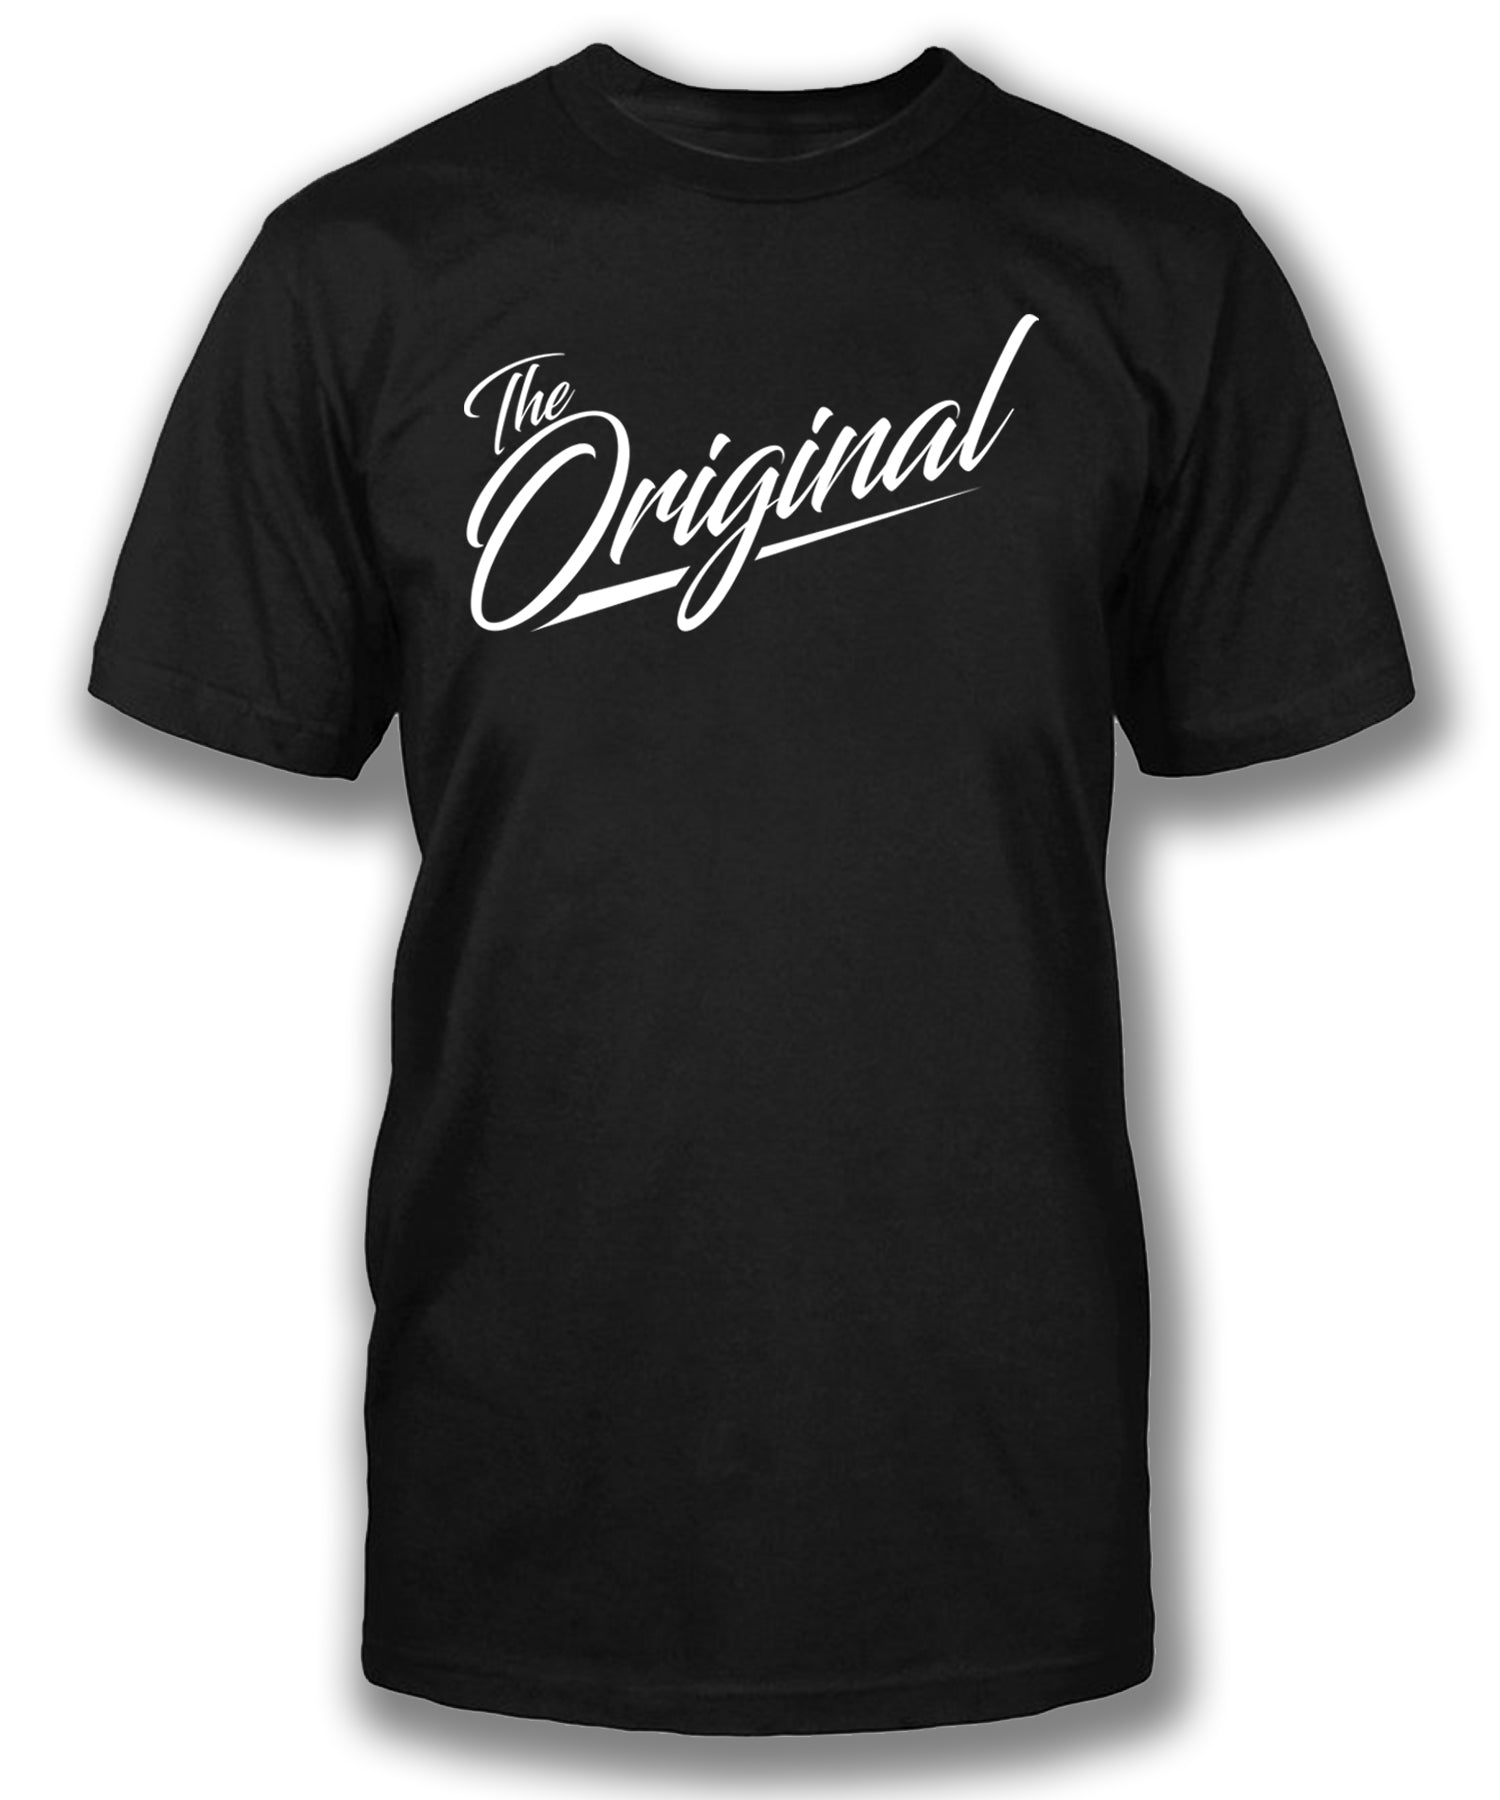 THE ORIGINAL - Men's short sleeve tee